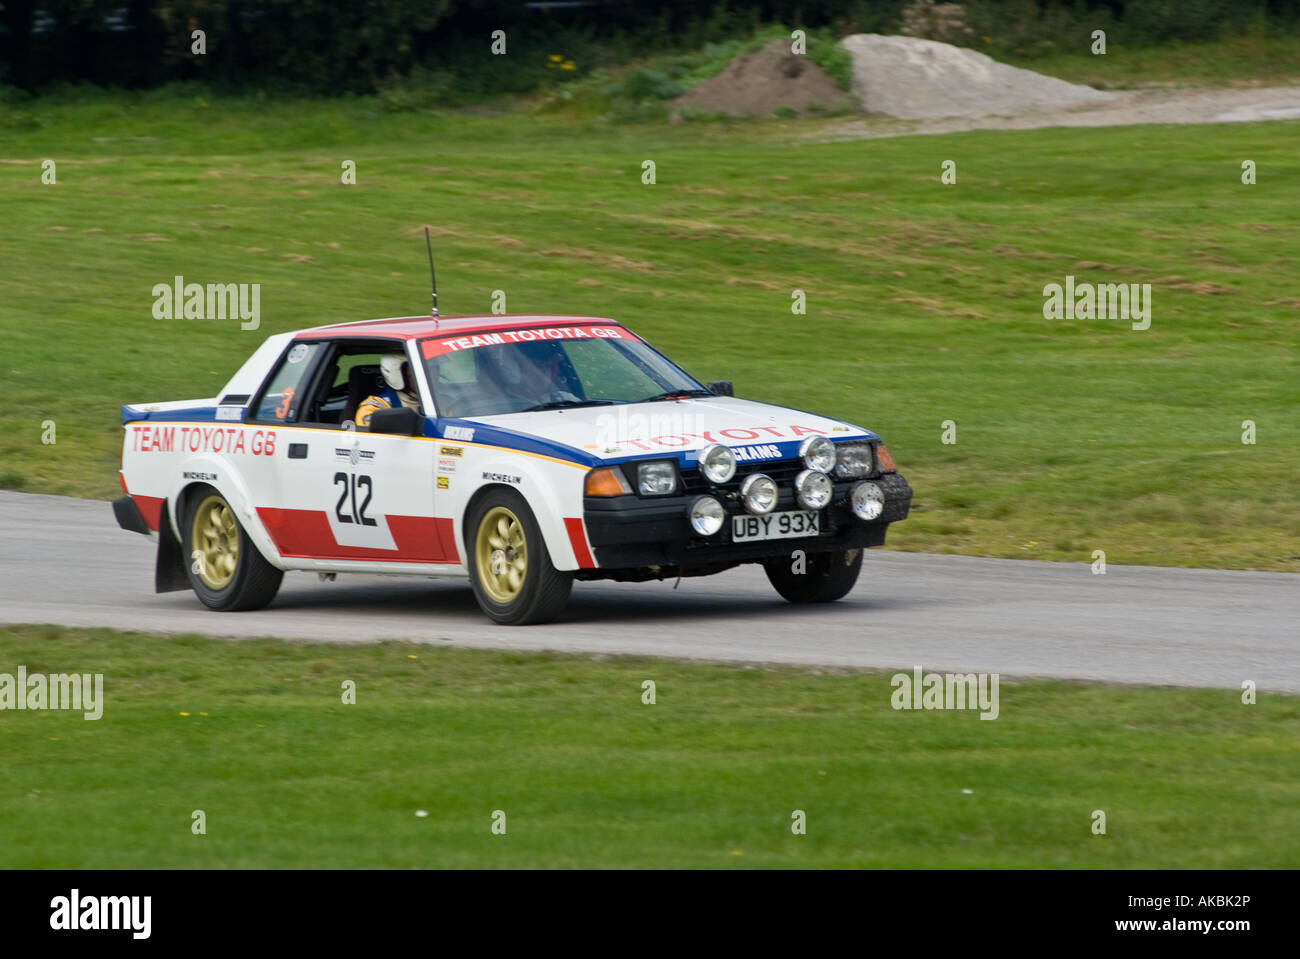 Toyota Celica Group B Historic Rally Car at Oulton Park Motor Racing ...